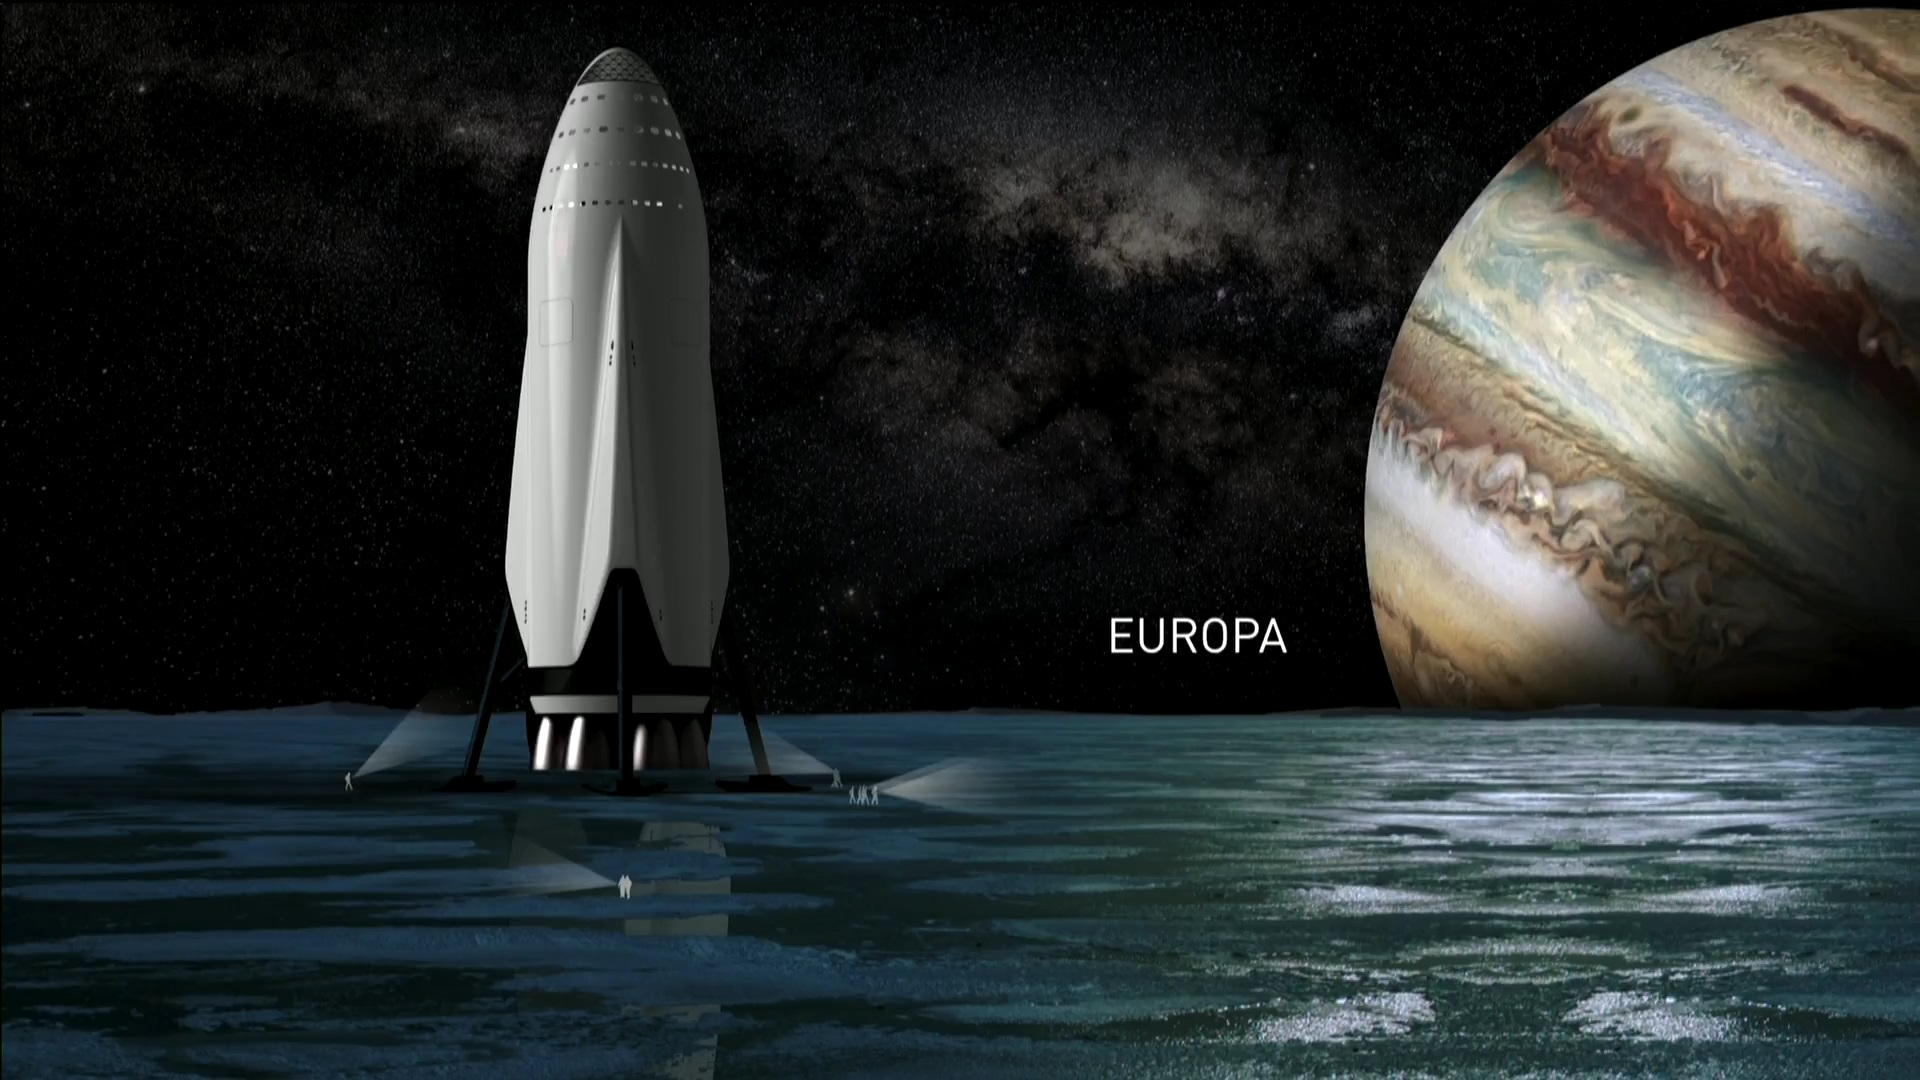 spacex-its-europa.jpg